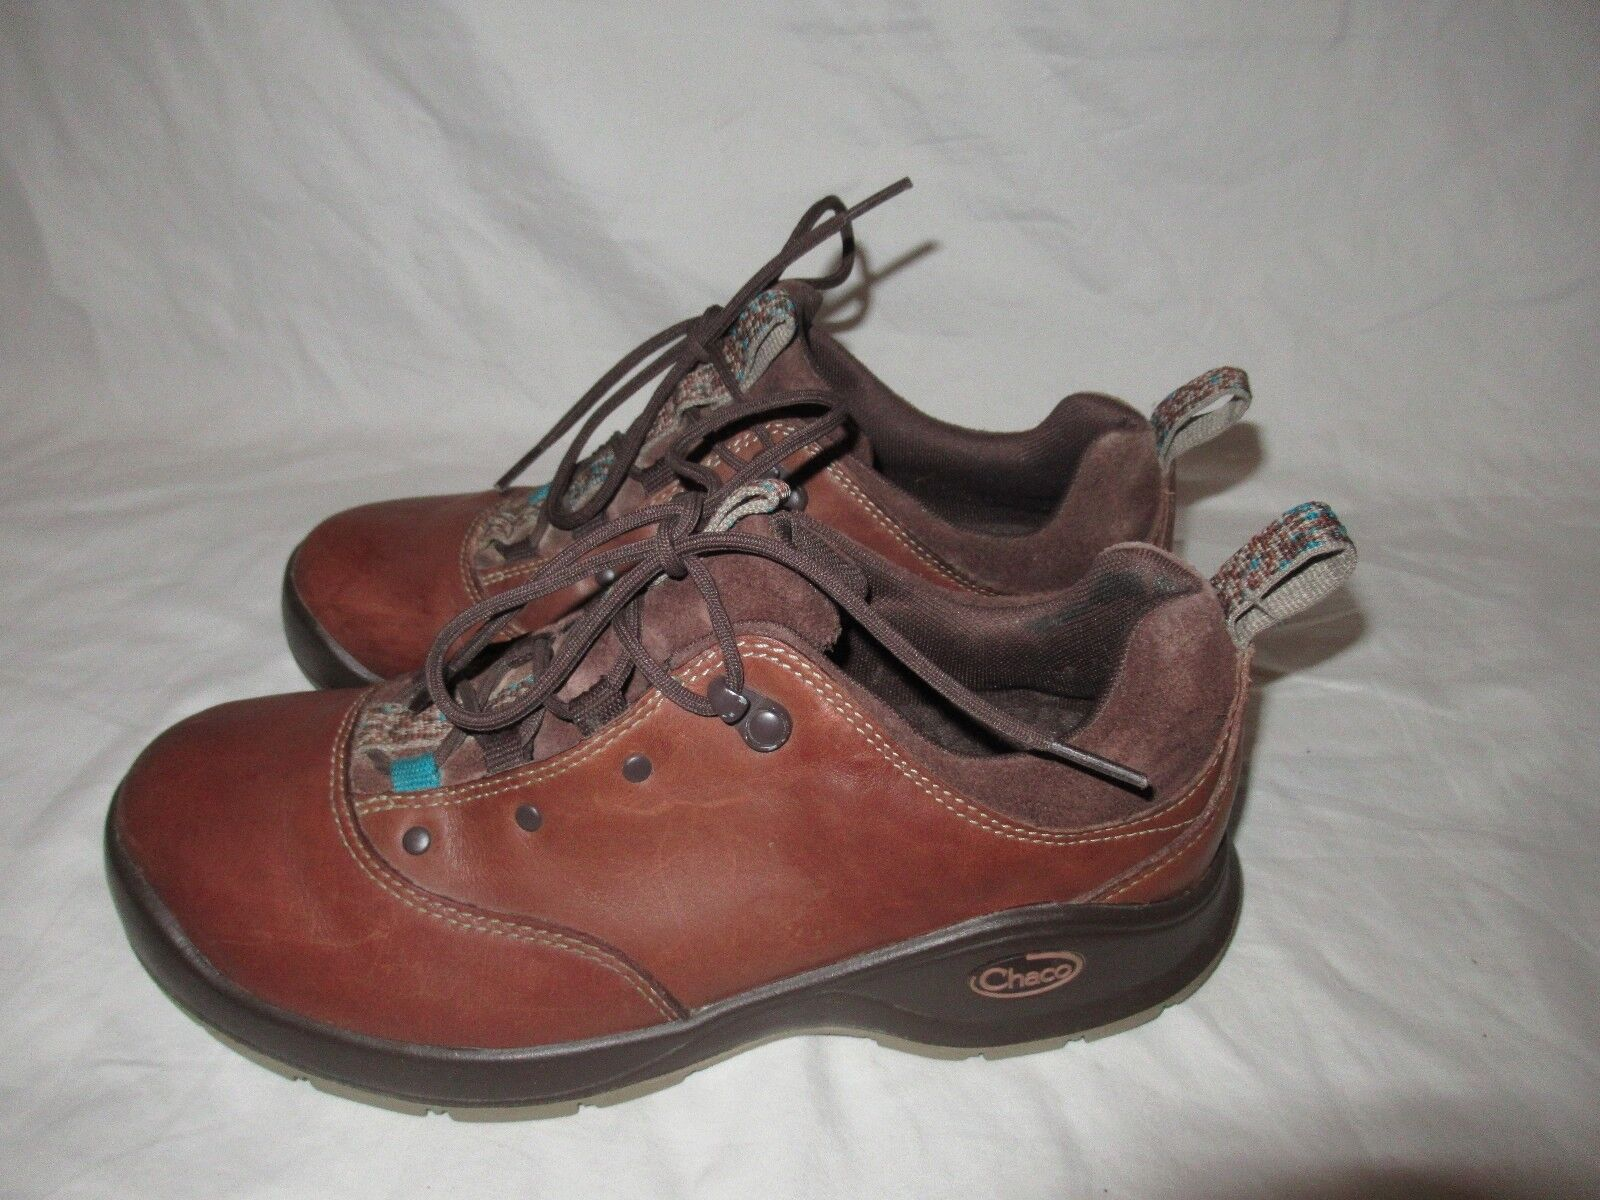 Chaco Tarvia Chaco Low Hiking Shoes Women Oxford Brown Leather  Size 8 GUC